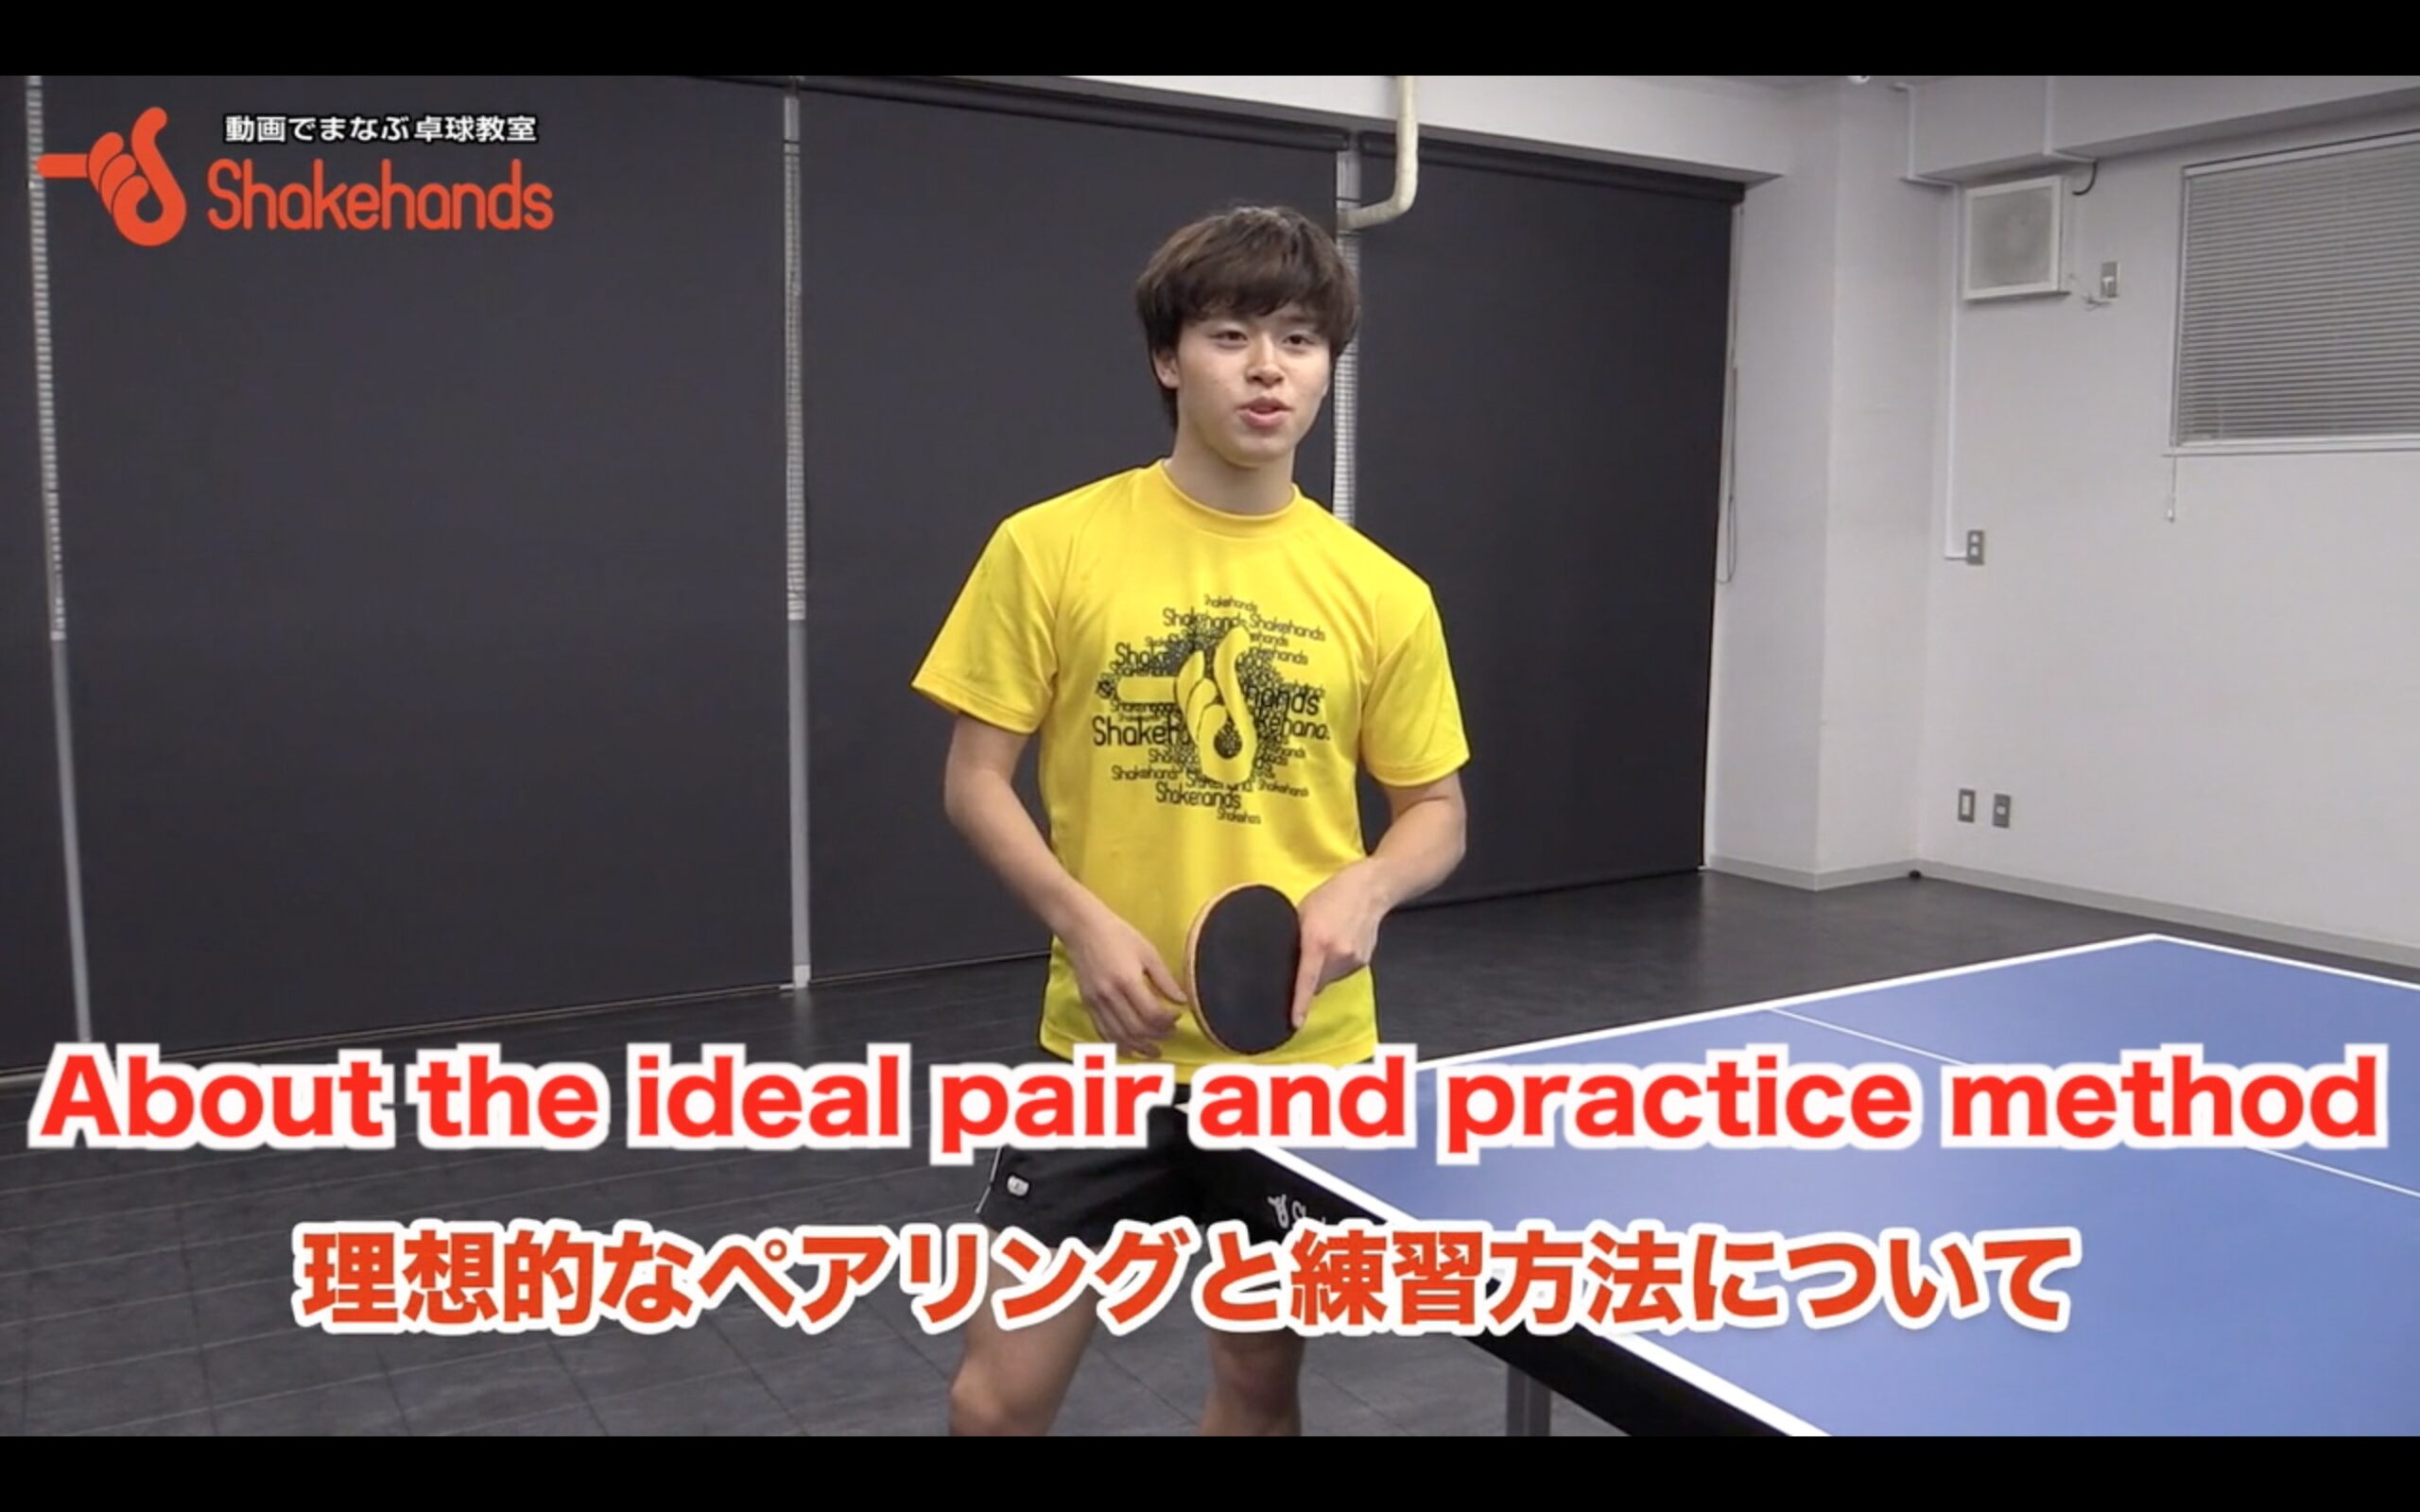 About the ideal pair and practice method